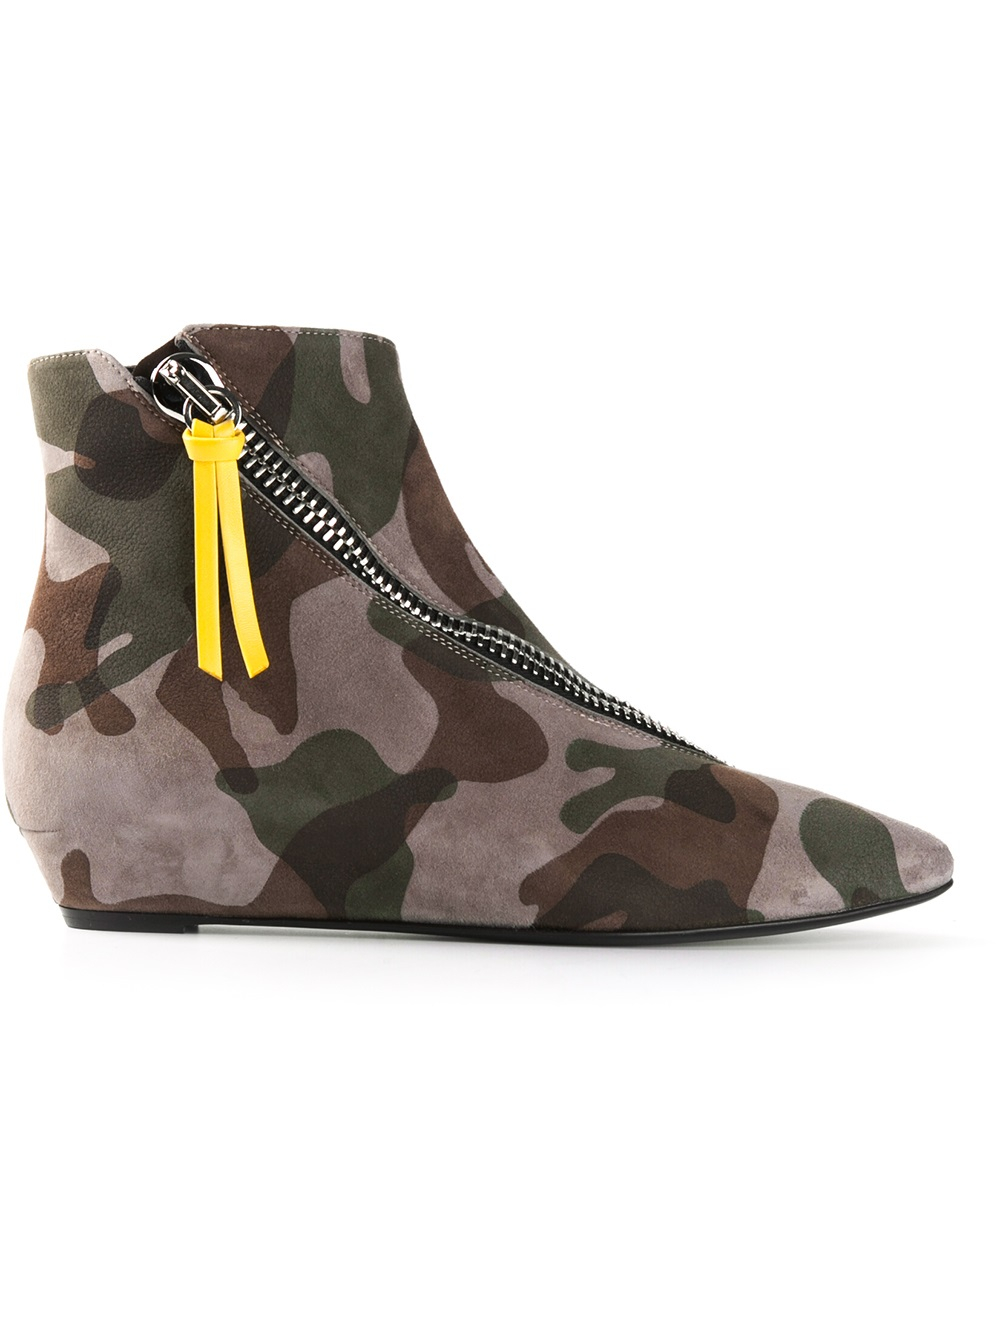 giuseppe zanotti camouflage ankle boots in green lyst